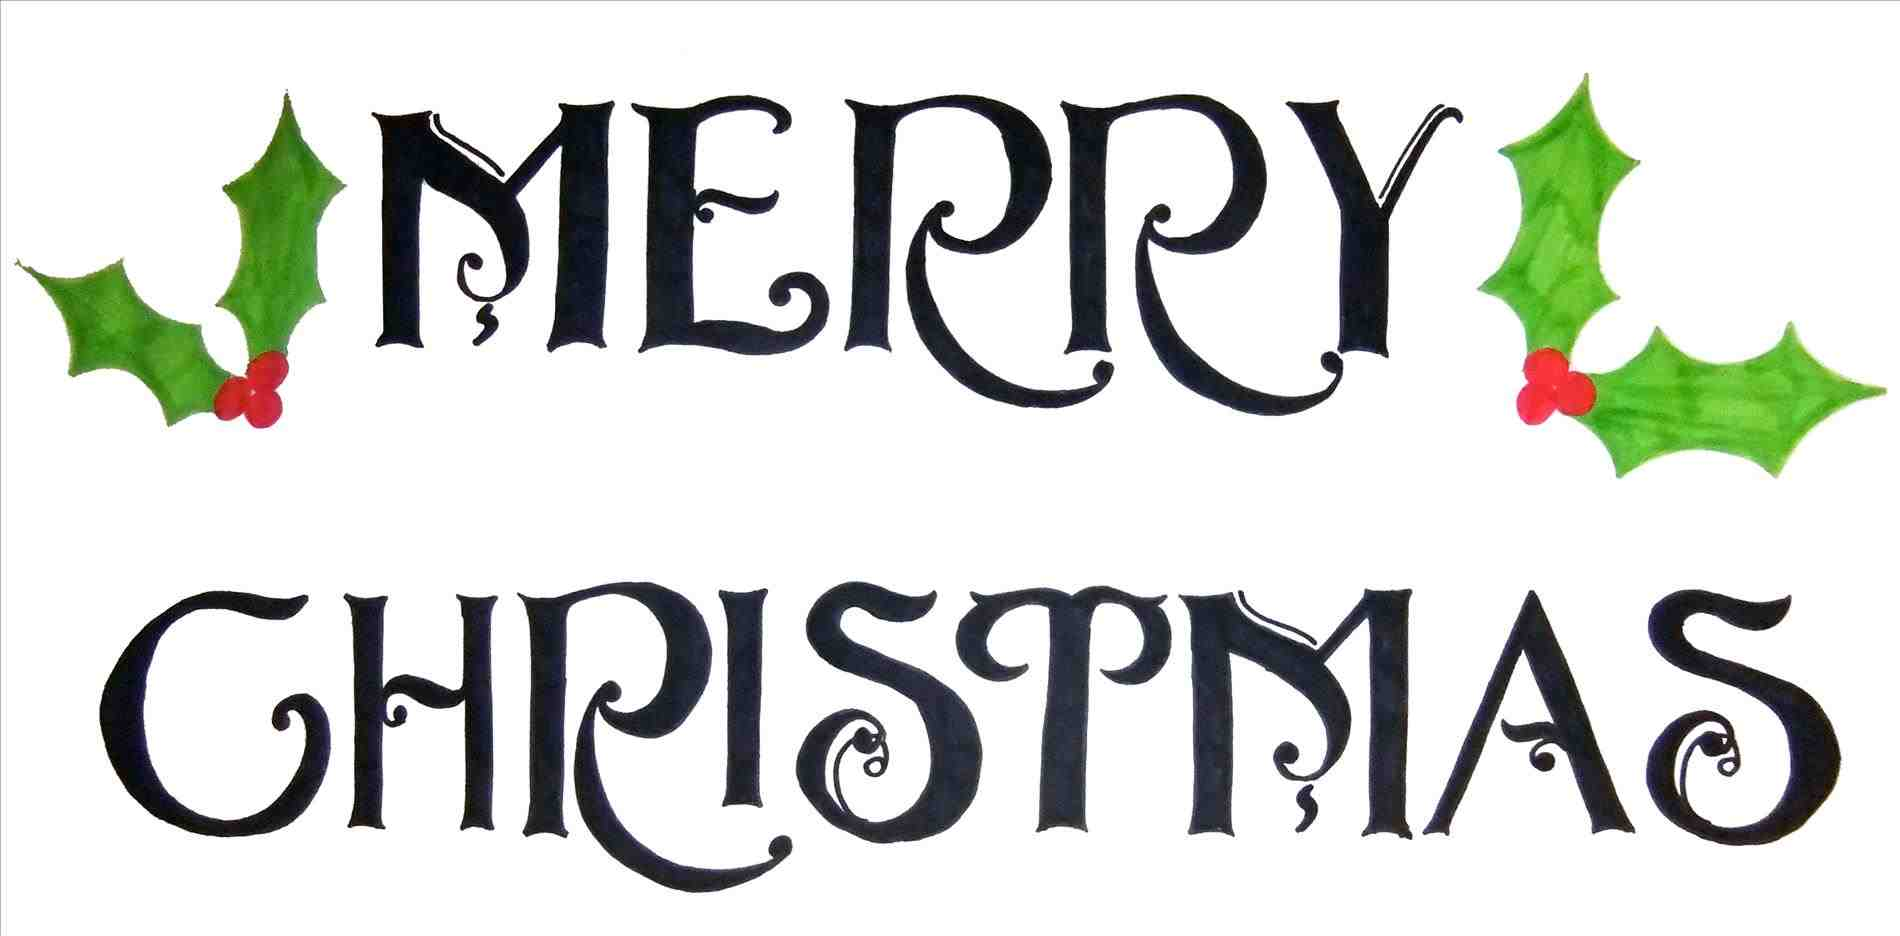 1900x936 Christmas And Happy New Year Clip Art The S Images Image Ix Images